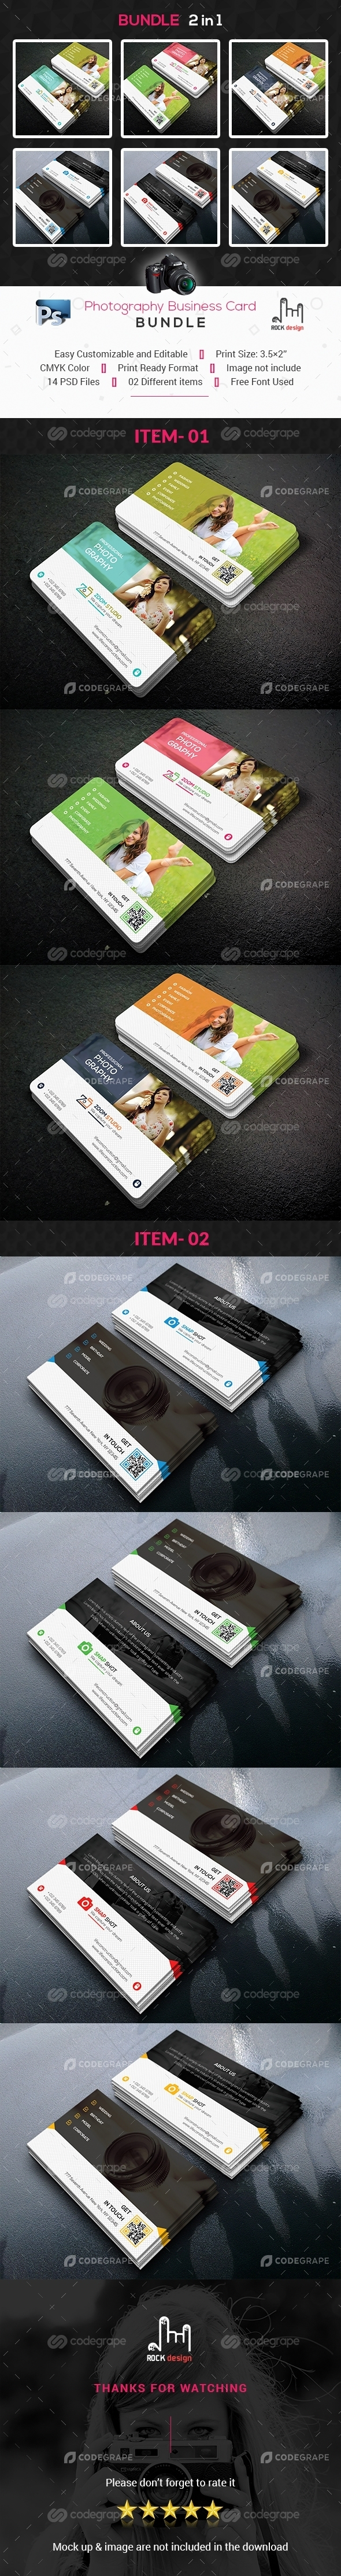 Photography Business Card Bundle 2 in 1